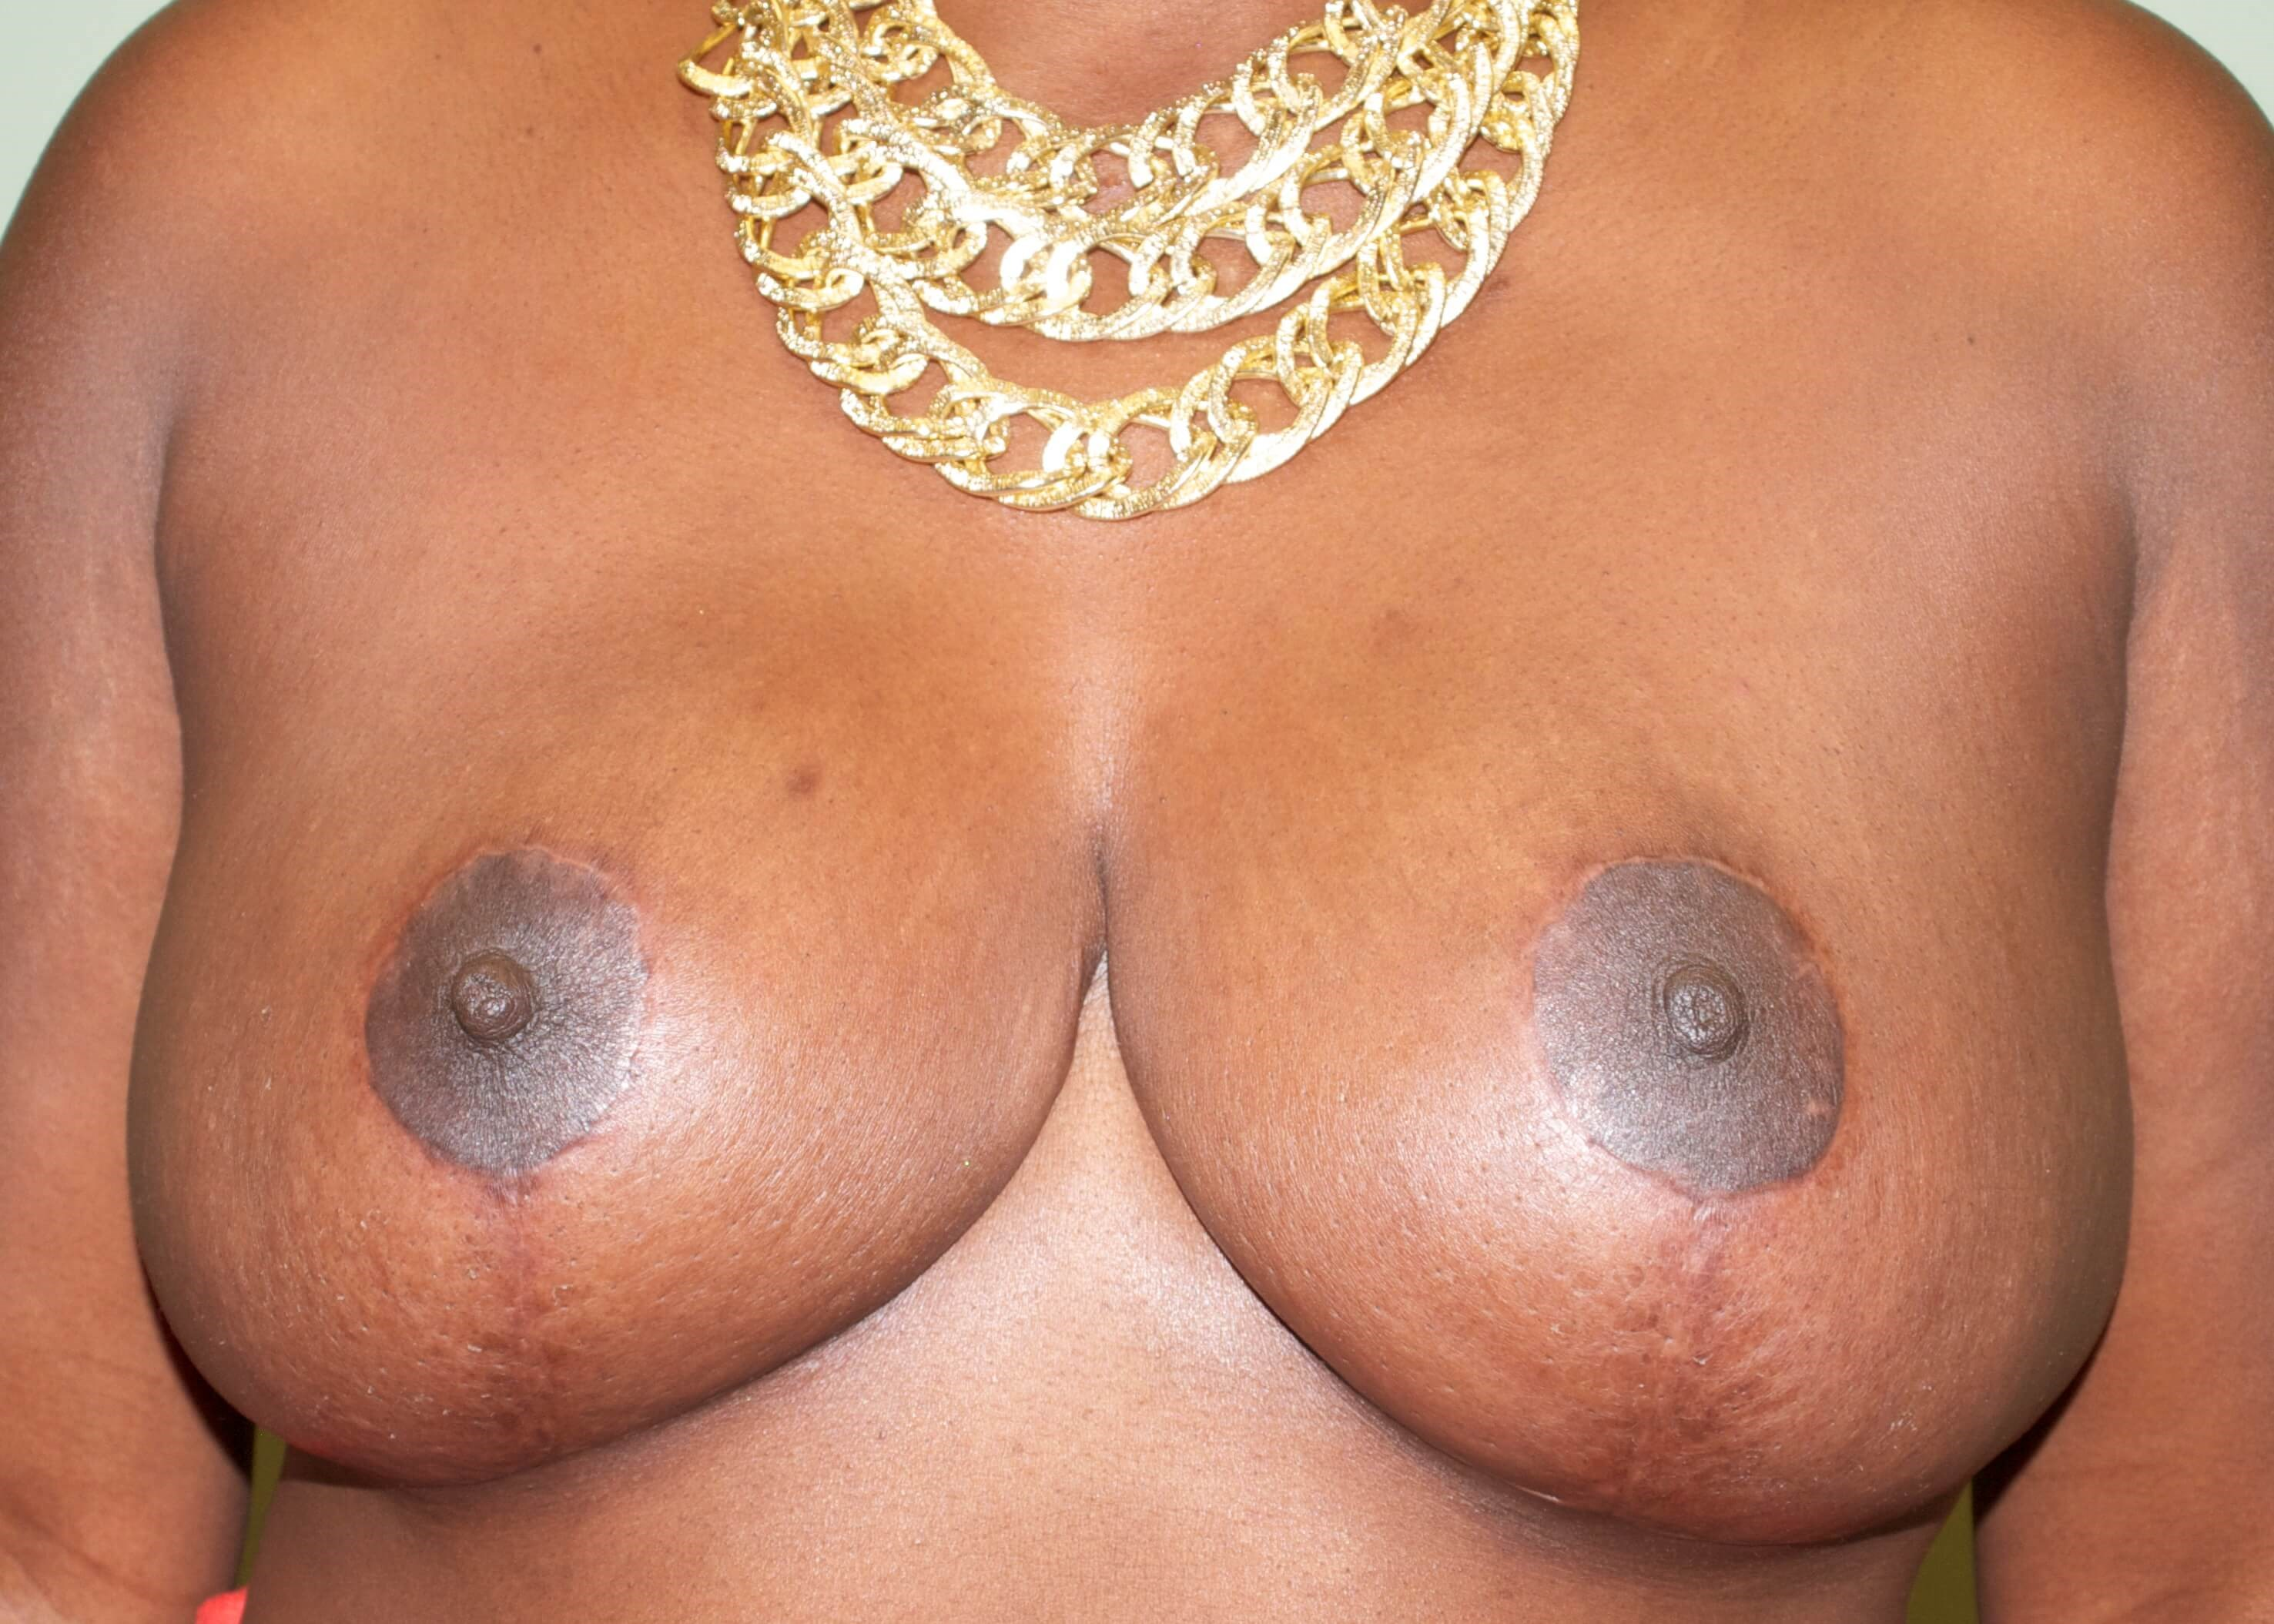 Large and Droopy Breasts After